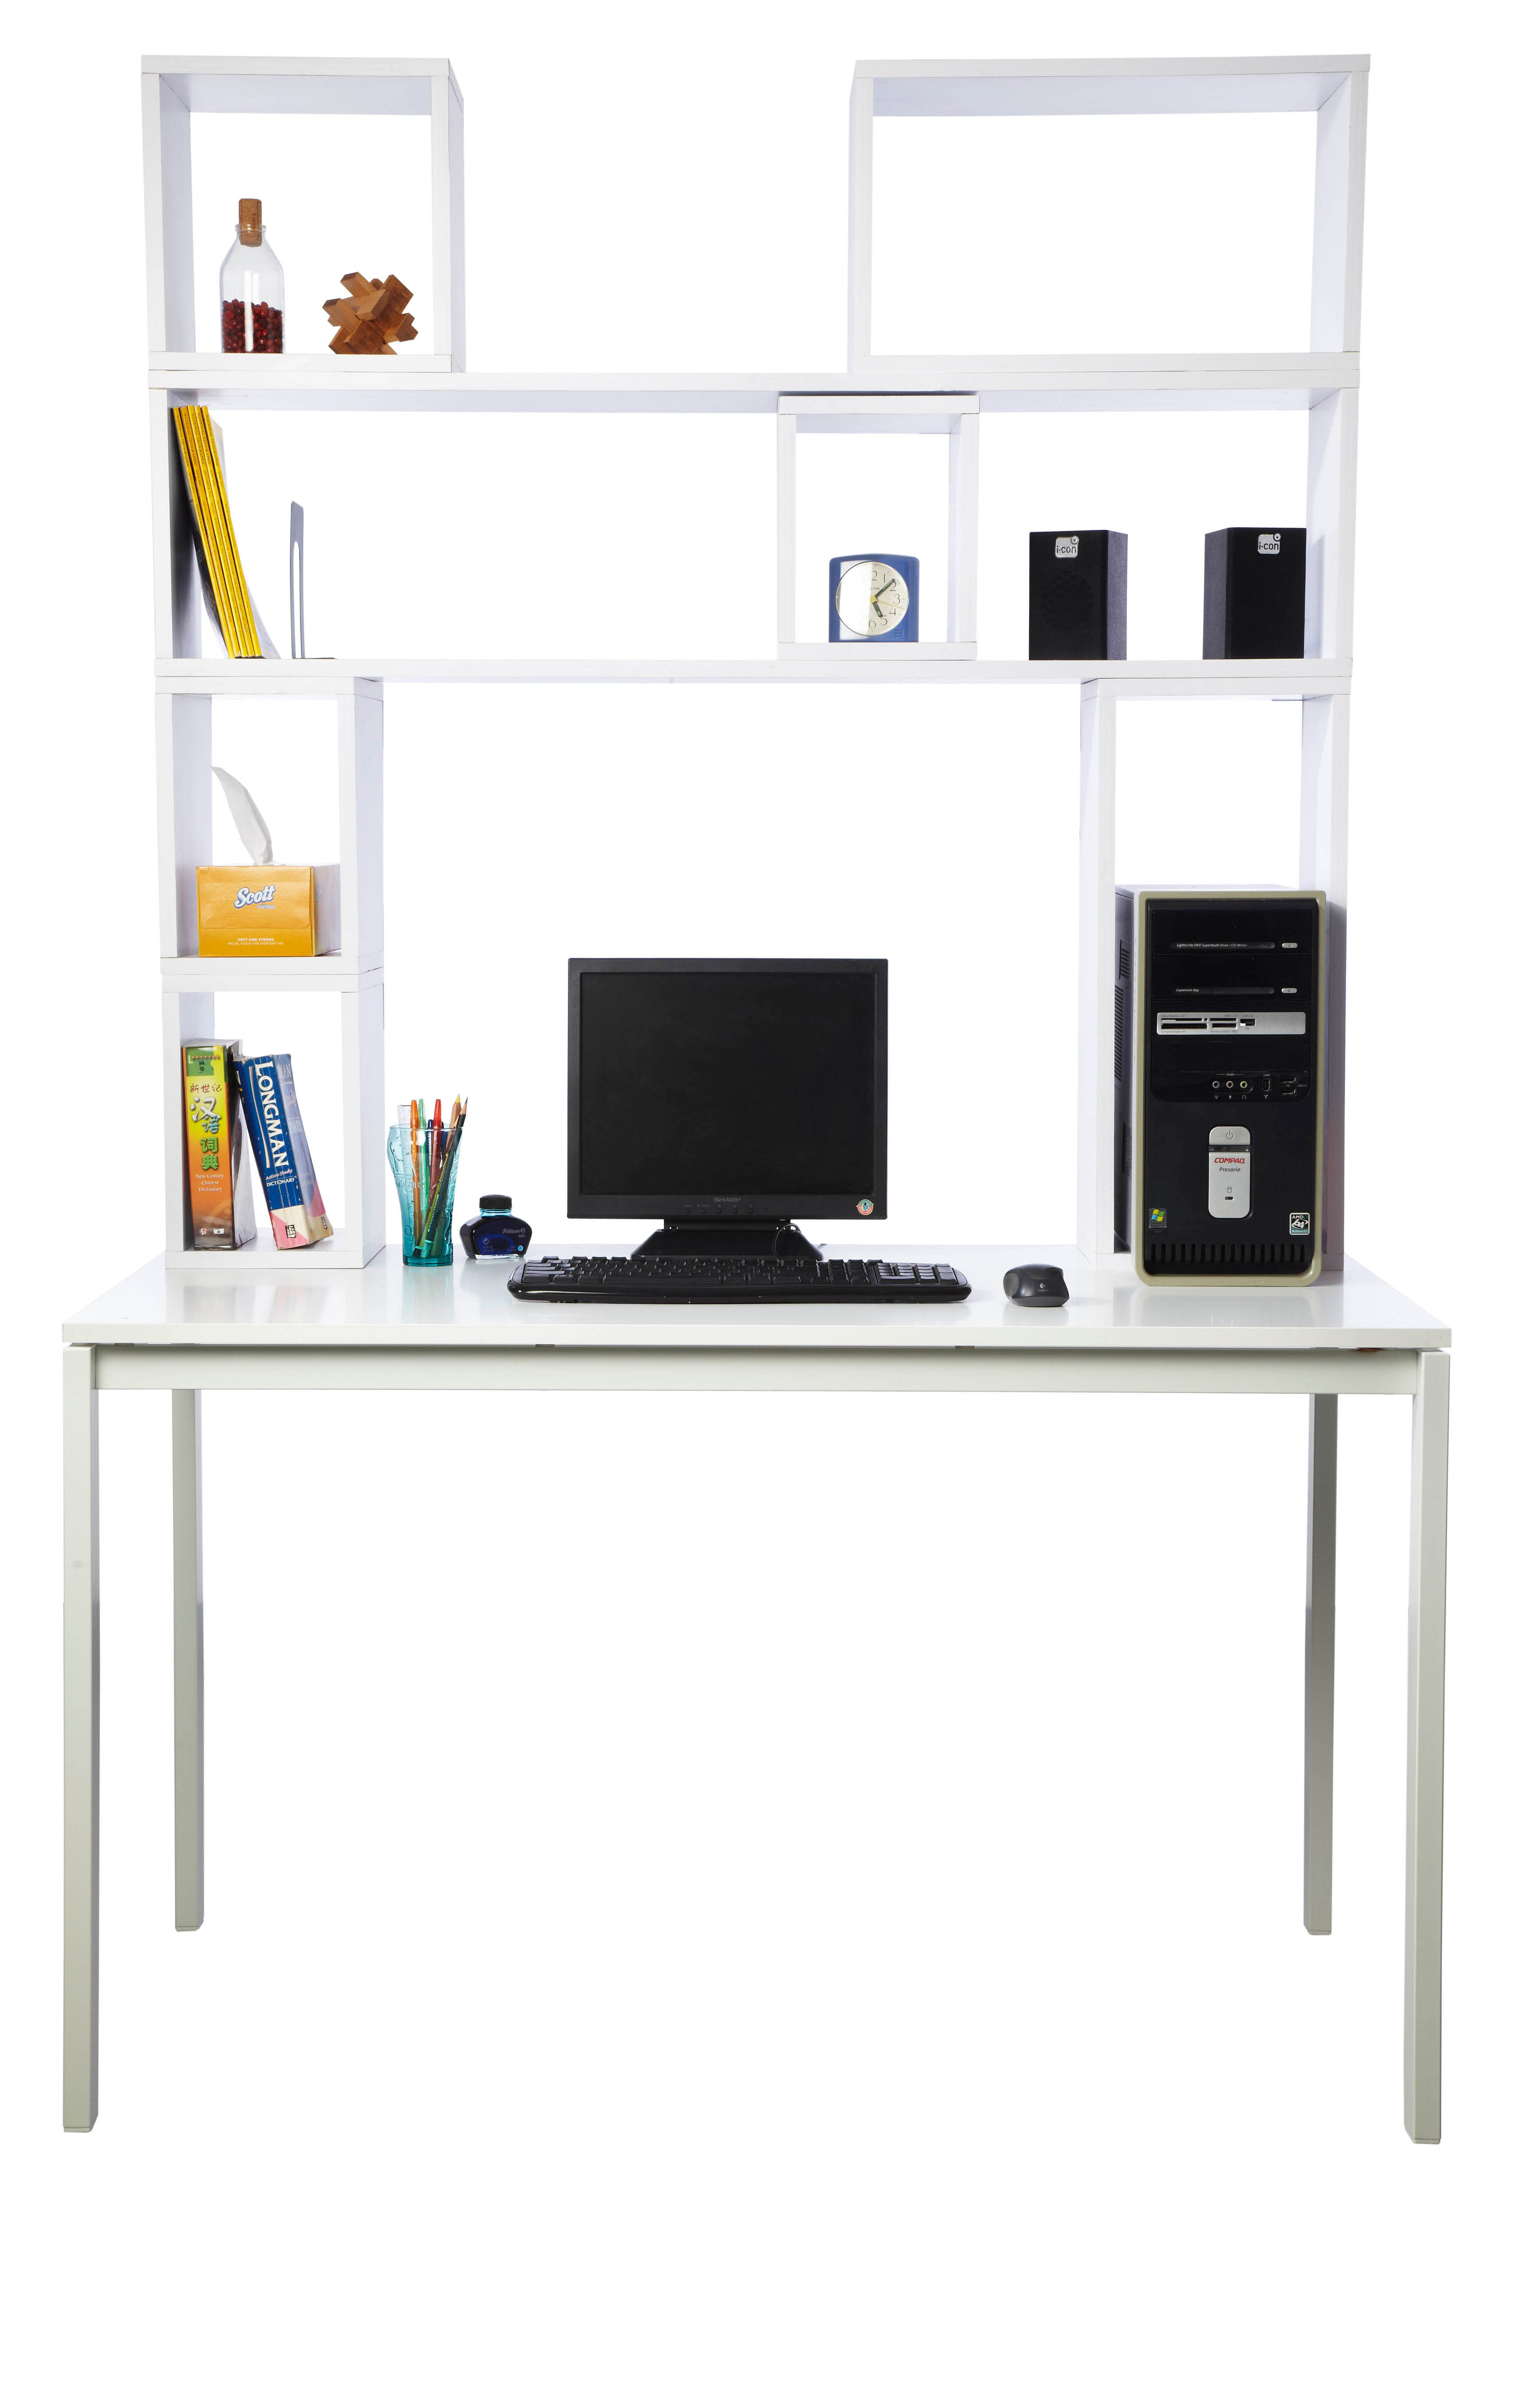 space saving furniture at ikea s student competition diwali desk decoration competition office furnitures site